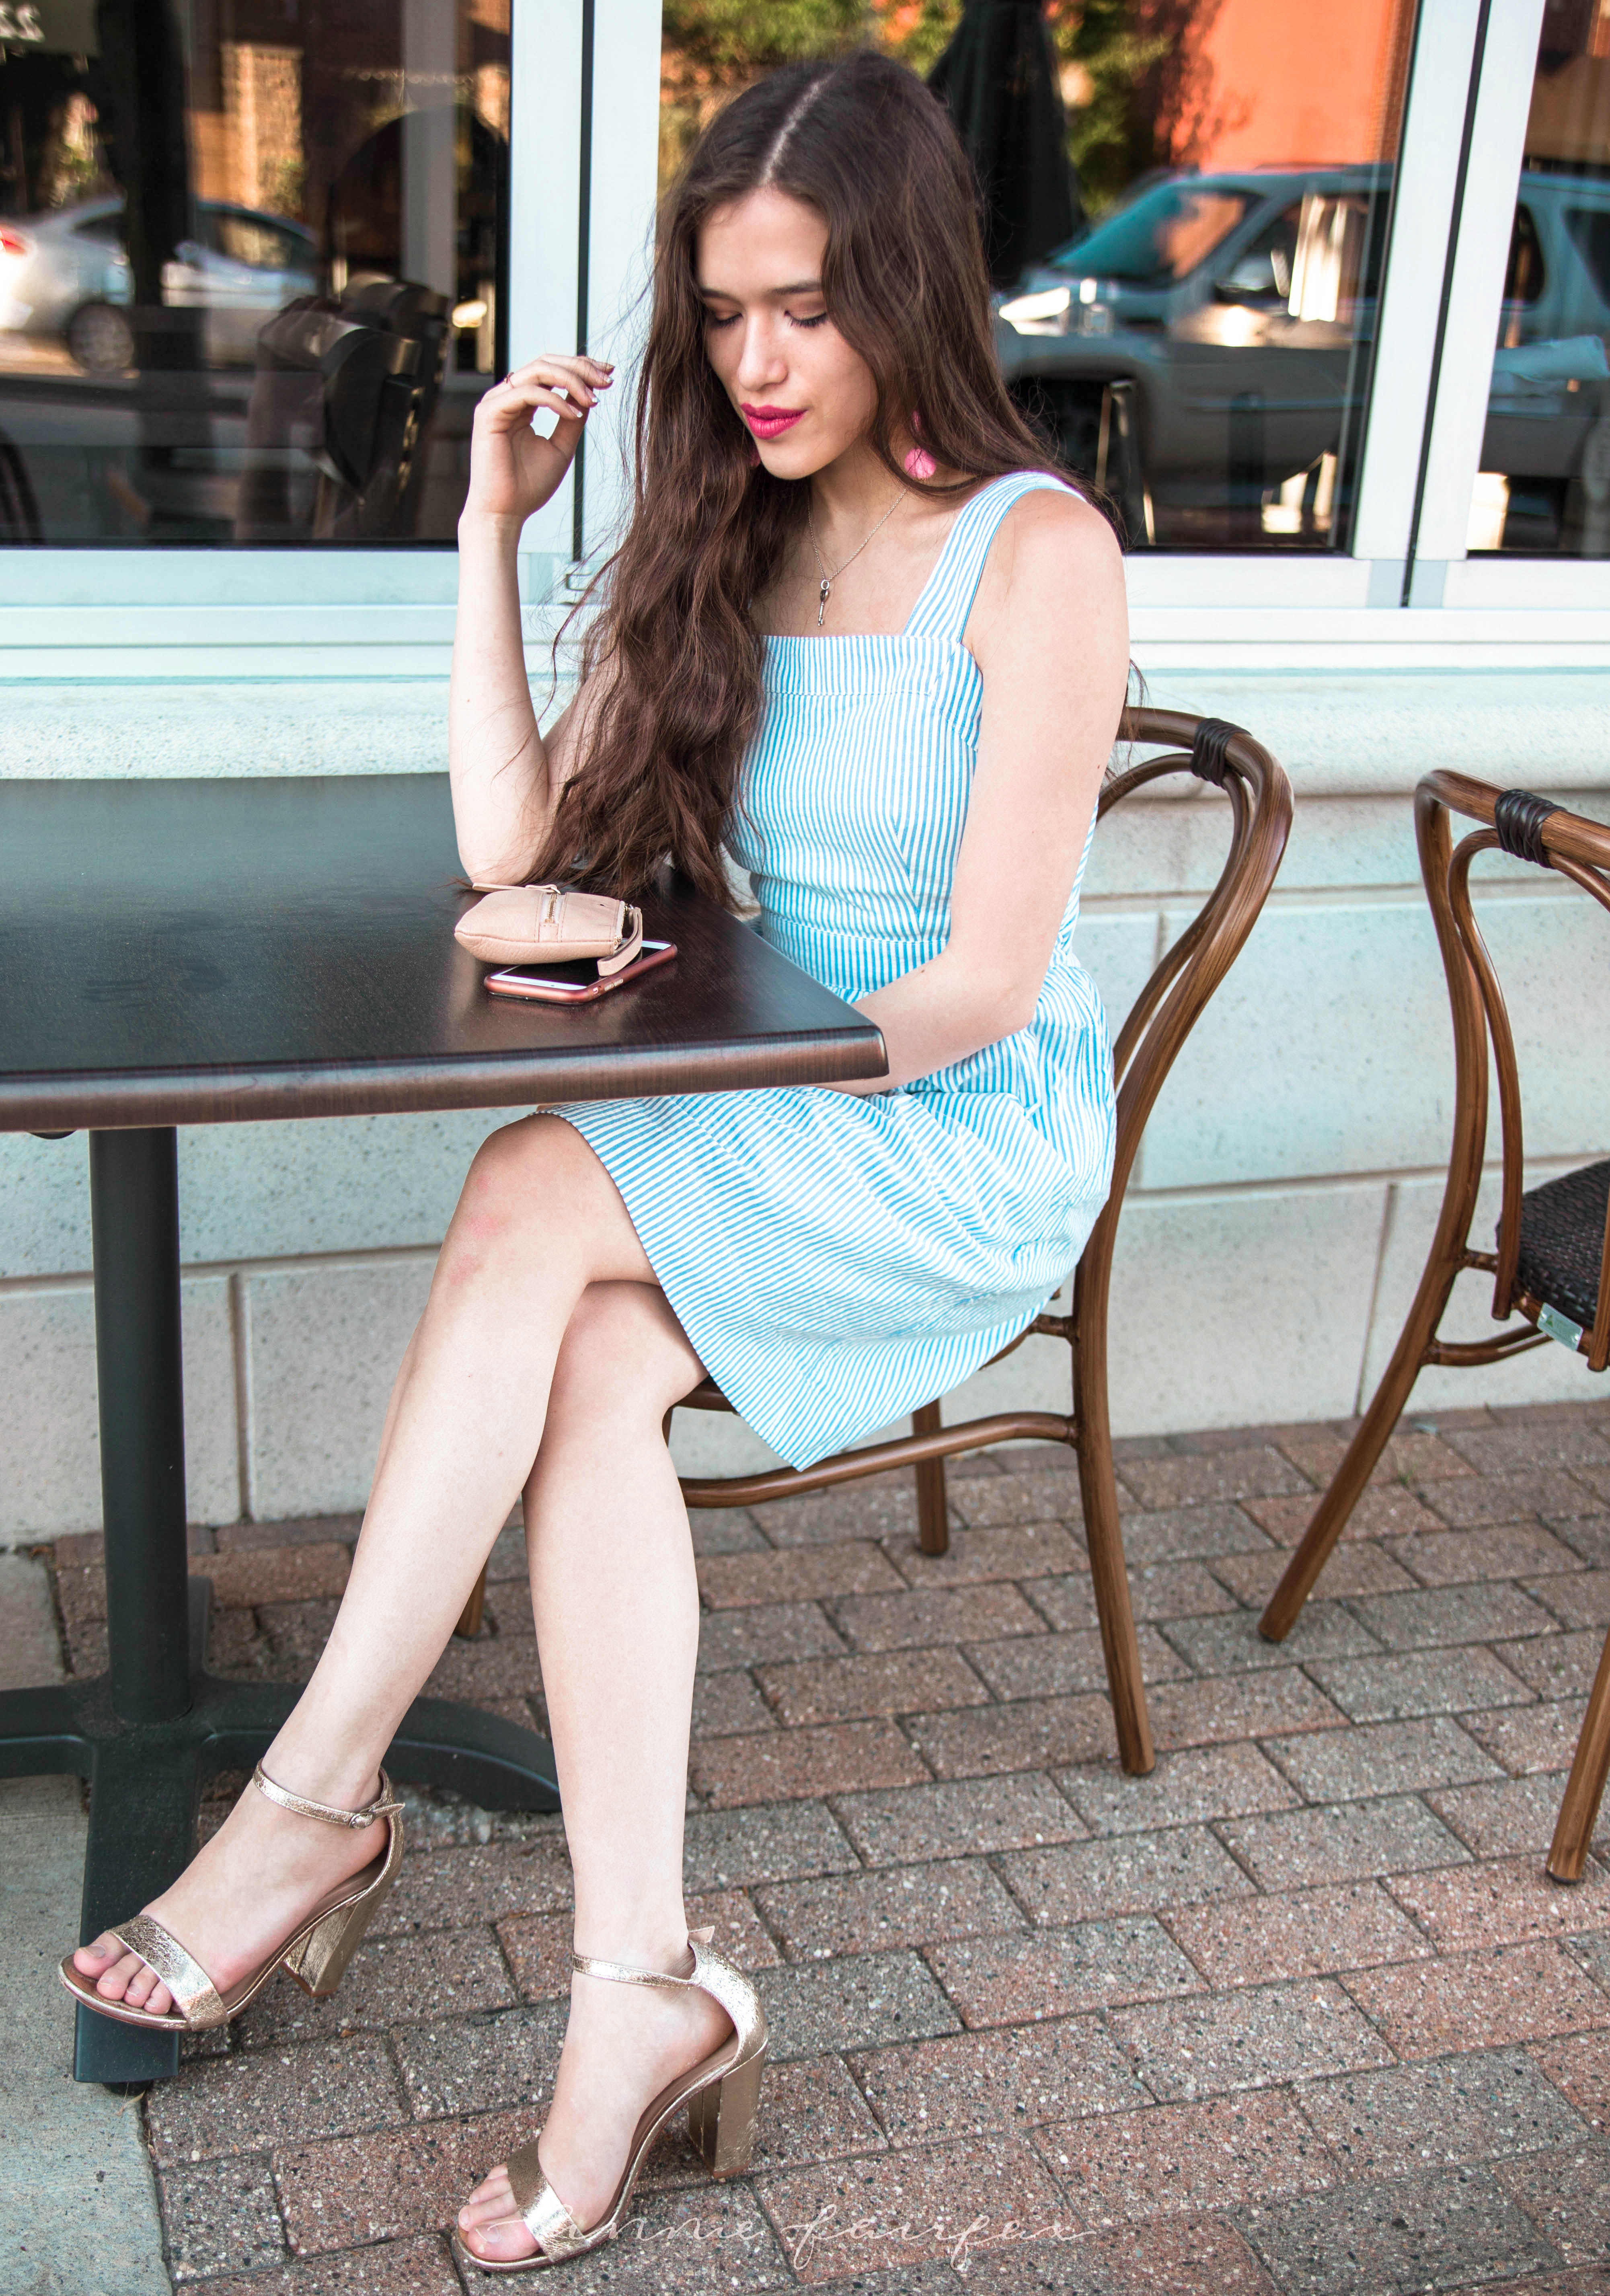 j. crew jcrew factory blue and white seersucker minidress fit and flare dress with pockets above the knee gold metallic chunky heels long brown wavy hair girl standing on sidewalk preppy style flattering for any body type sitting in chair at cafe looking at phone summer style inspiration warm weather clothing for teens women classic with a twist kate spade bee wristlet